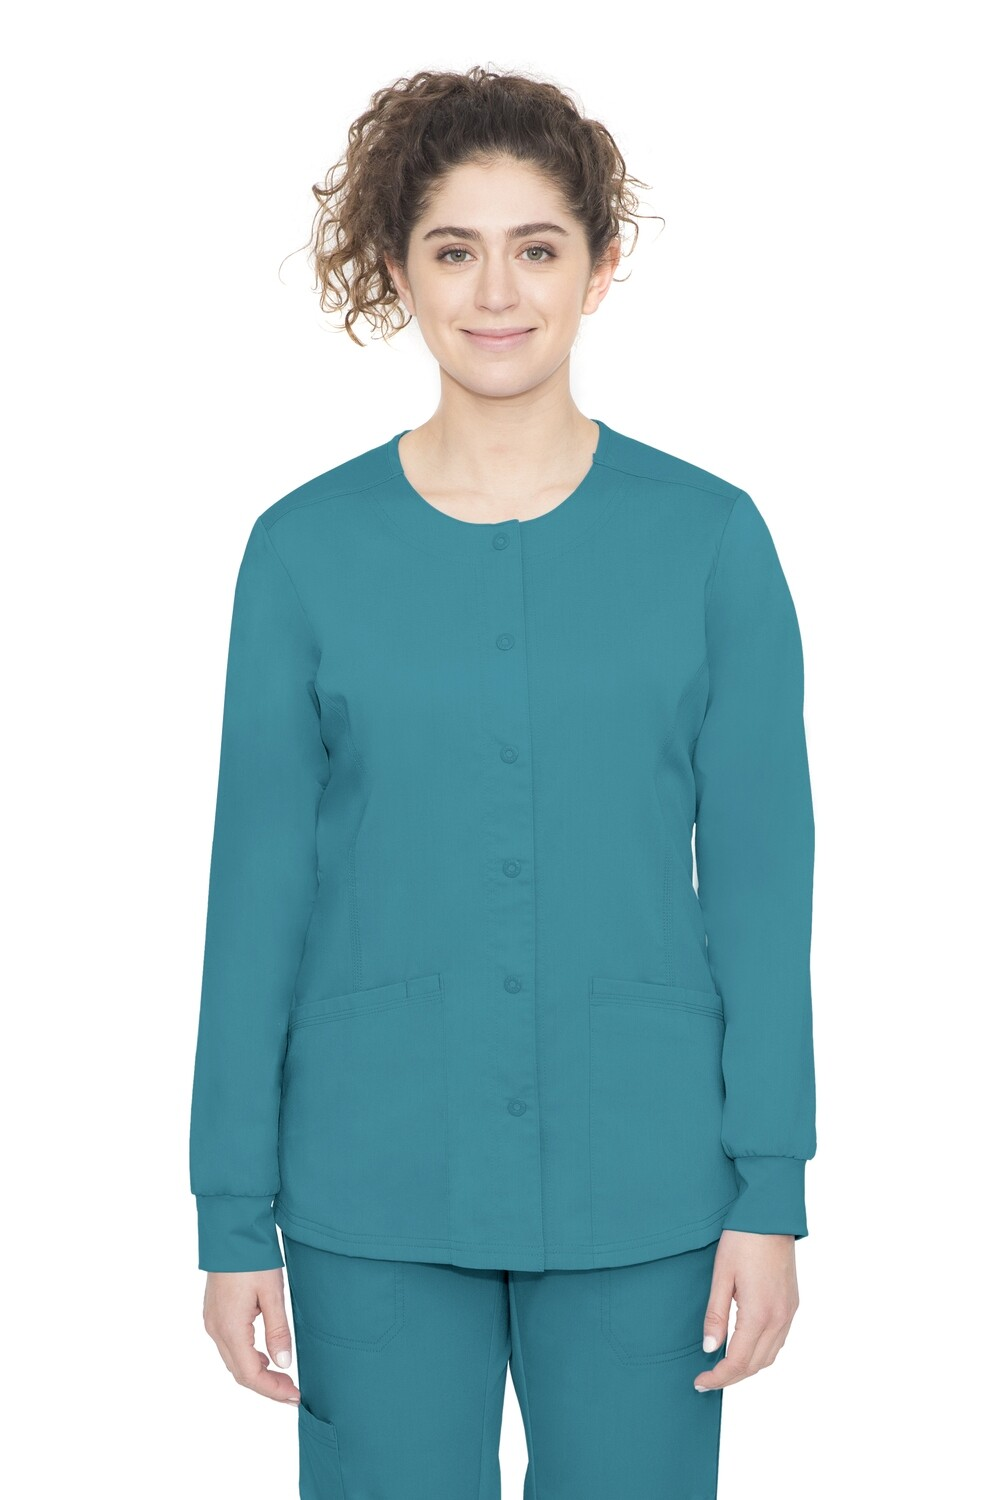 5063 DAISY JACKET TEAL 3XL